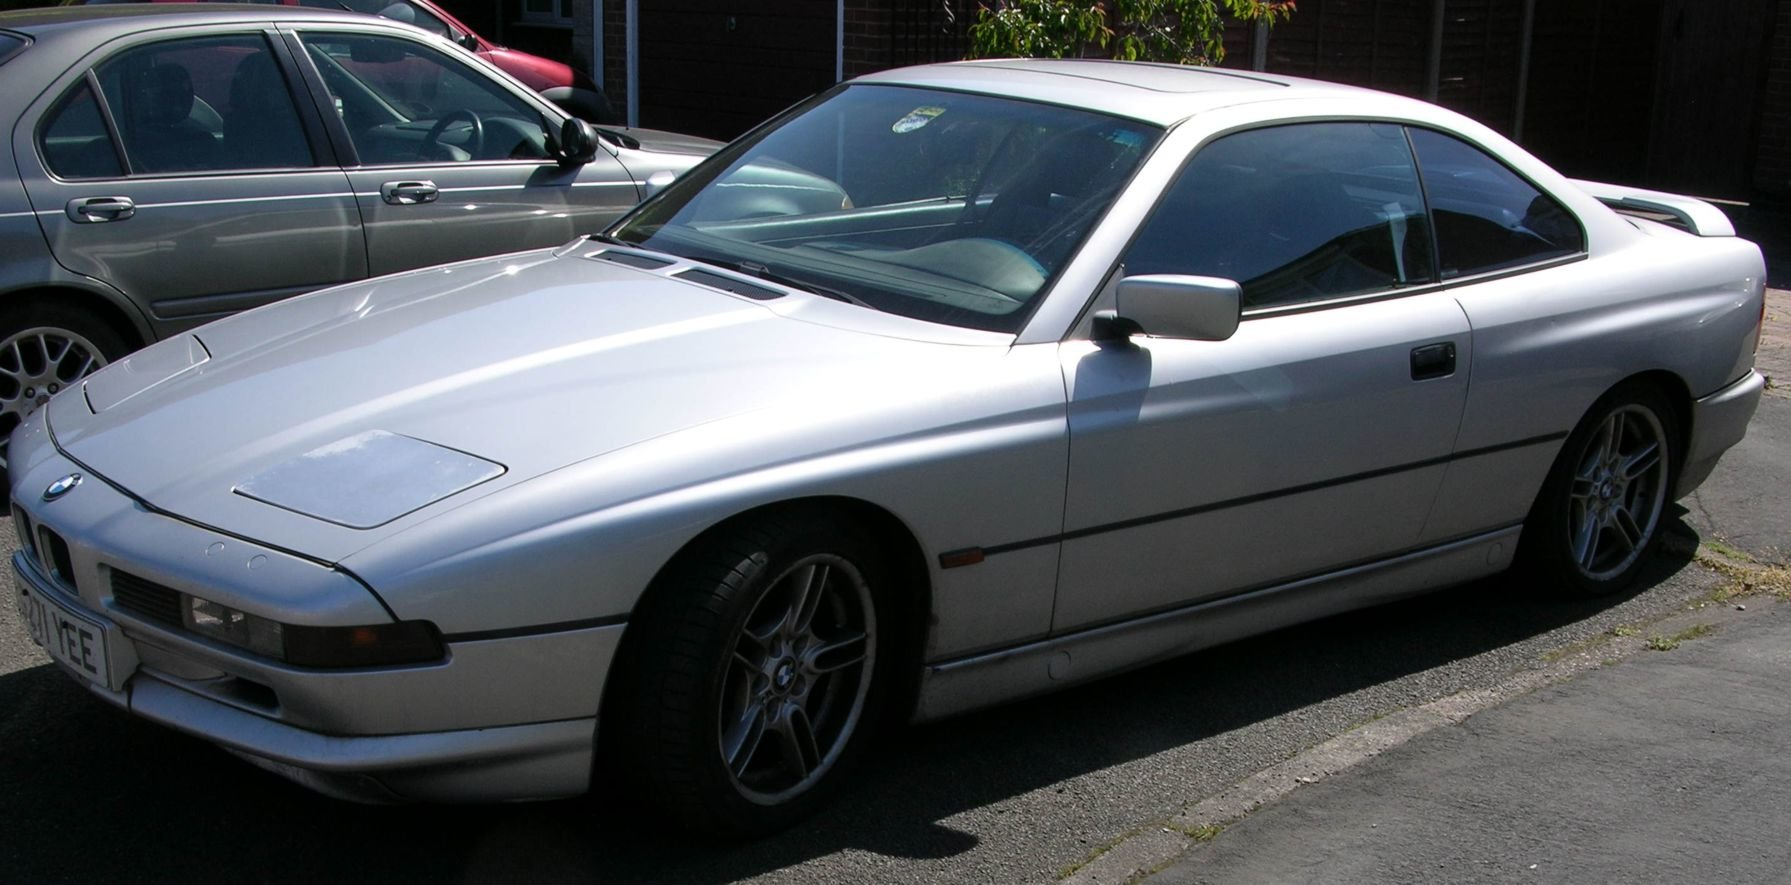 1991 Bwm 850i, sterling silver, lhd, auto, japan import For Sale (picture 6 of 6)